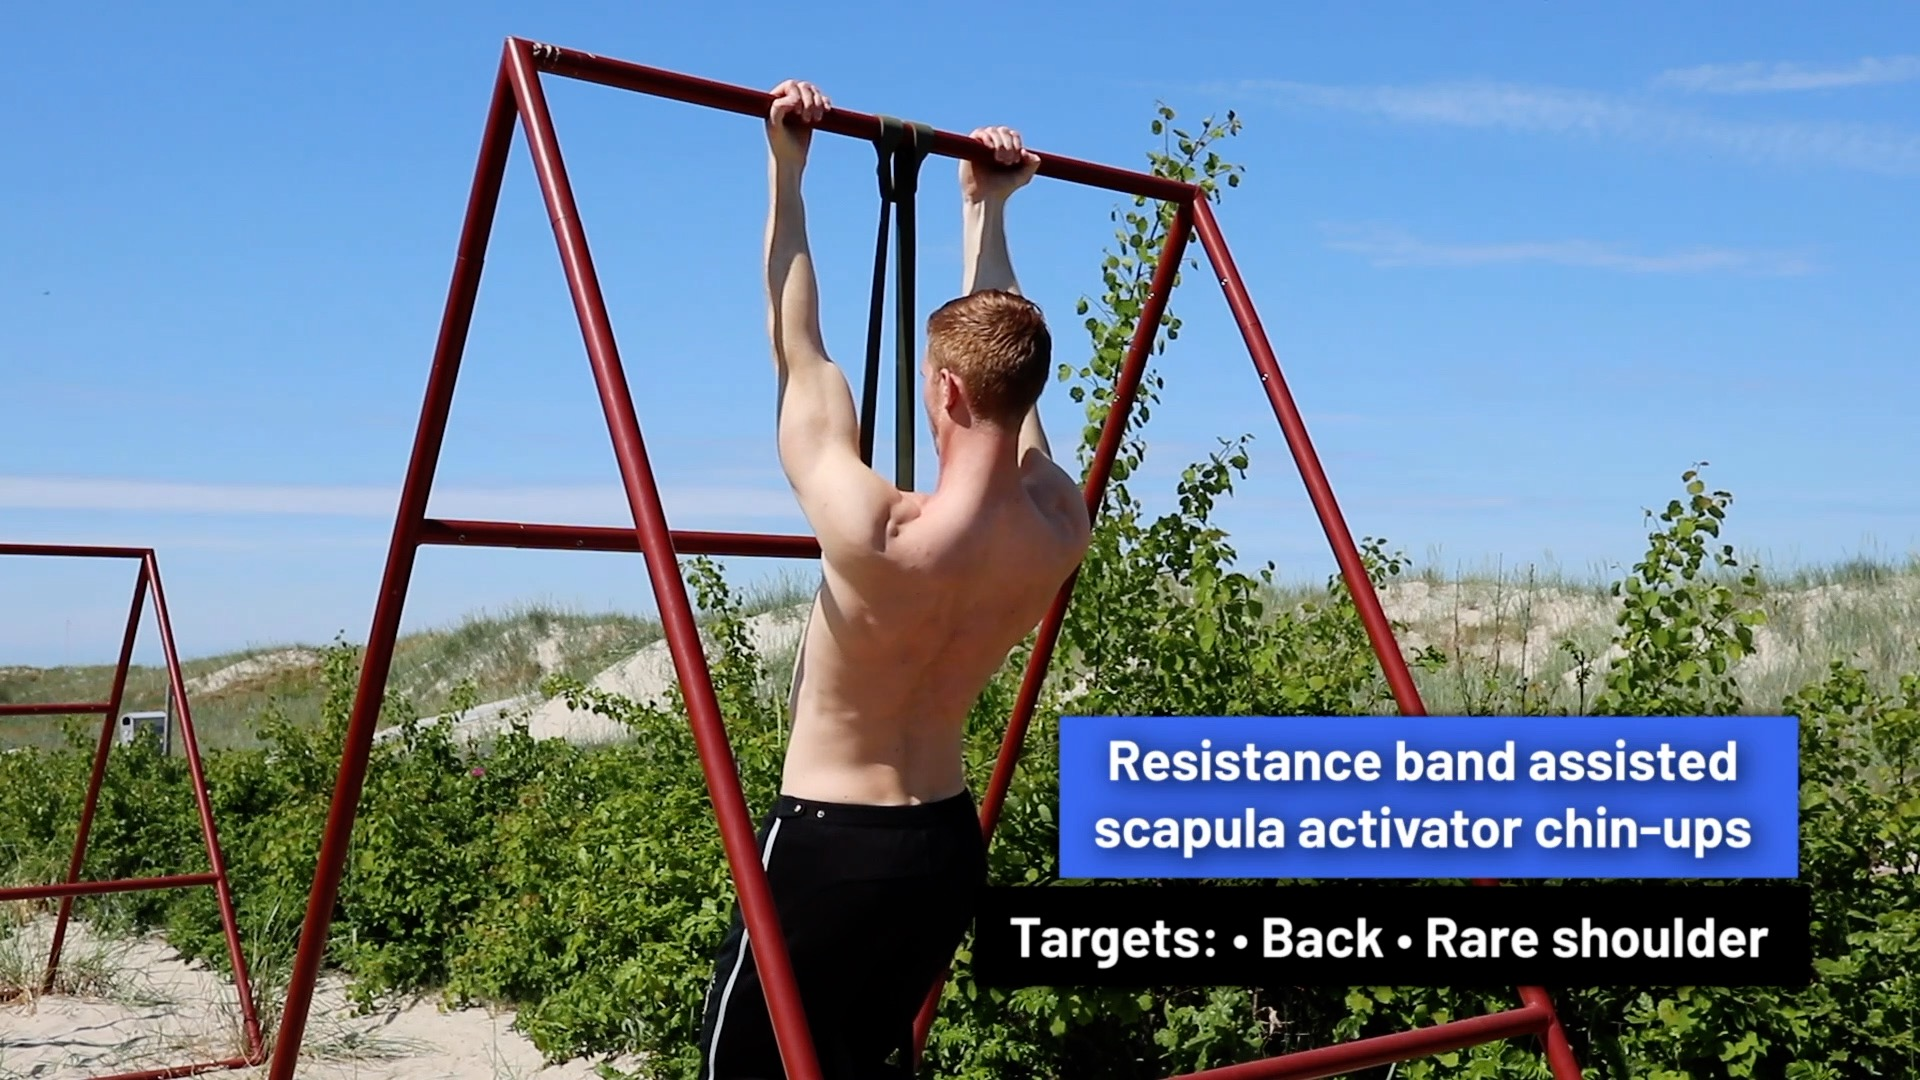 Resistance band assisted scapula activator chin-ups